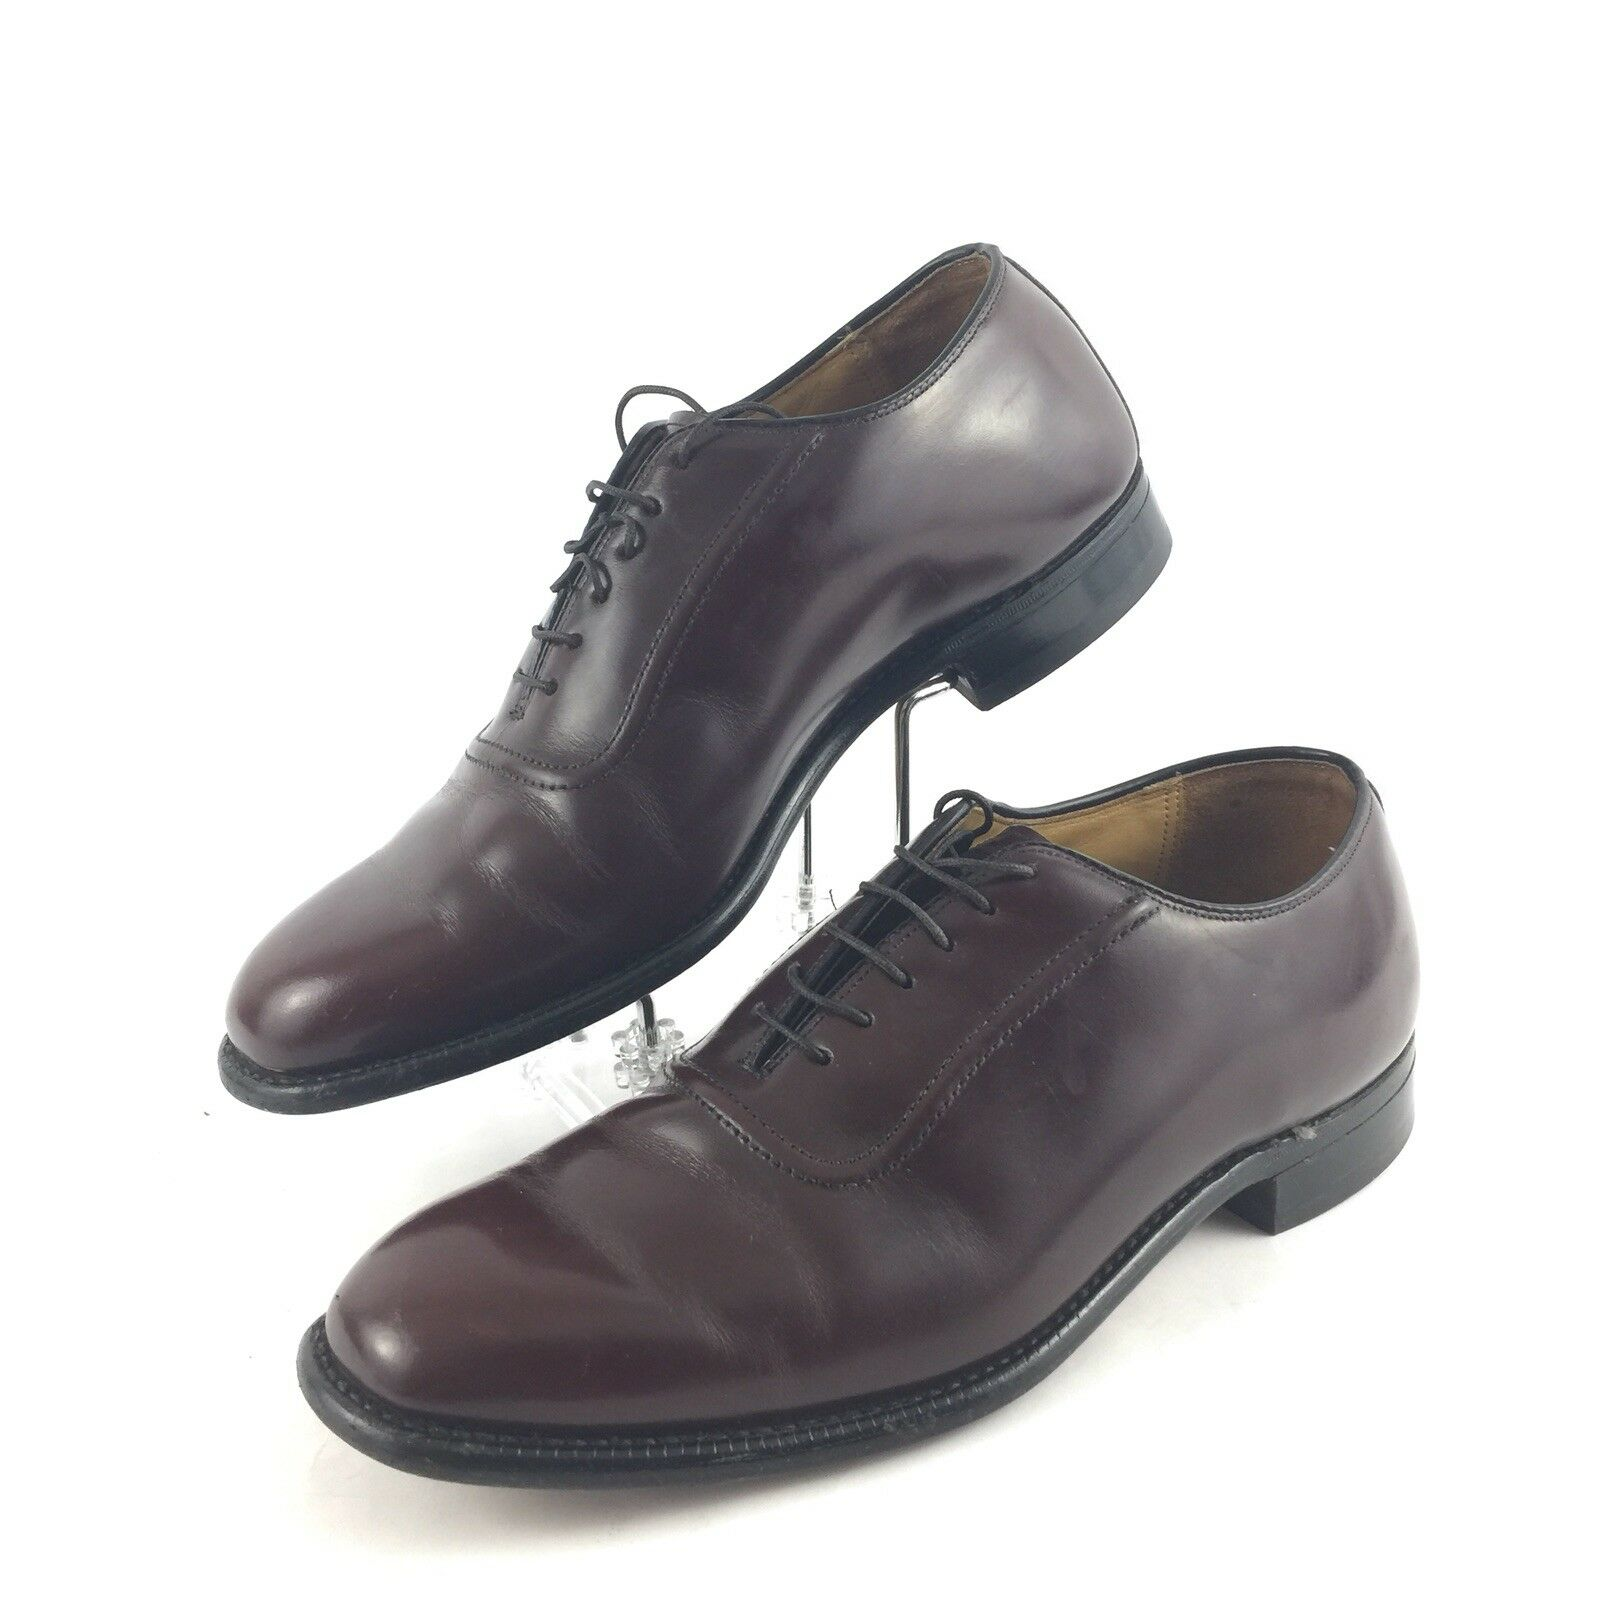 Johnston & Murphy Men Size 8 M Oxford shoes Leather Lace Up Cap Toe Made In USA